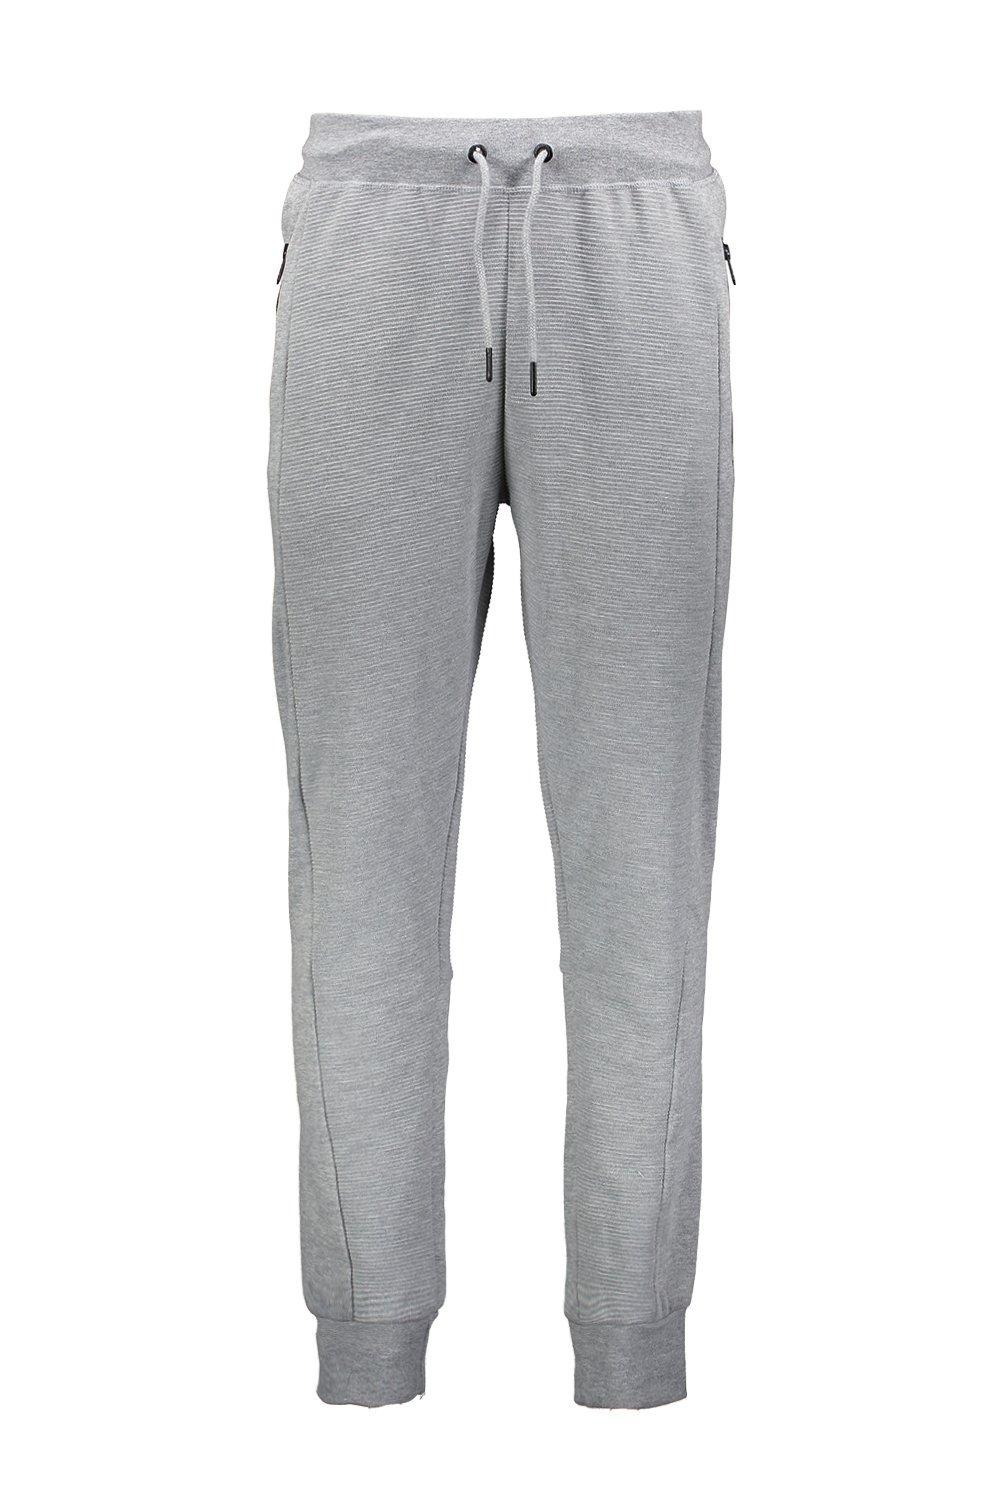 Side Checked grey Joggers Panel marl Jersey SWqwCPrnq